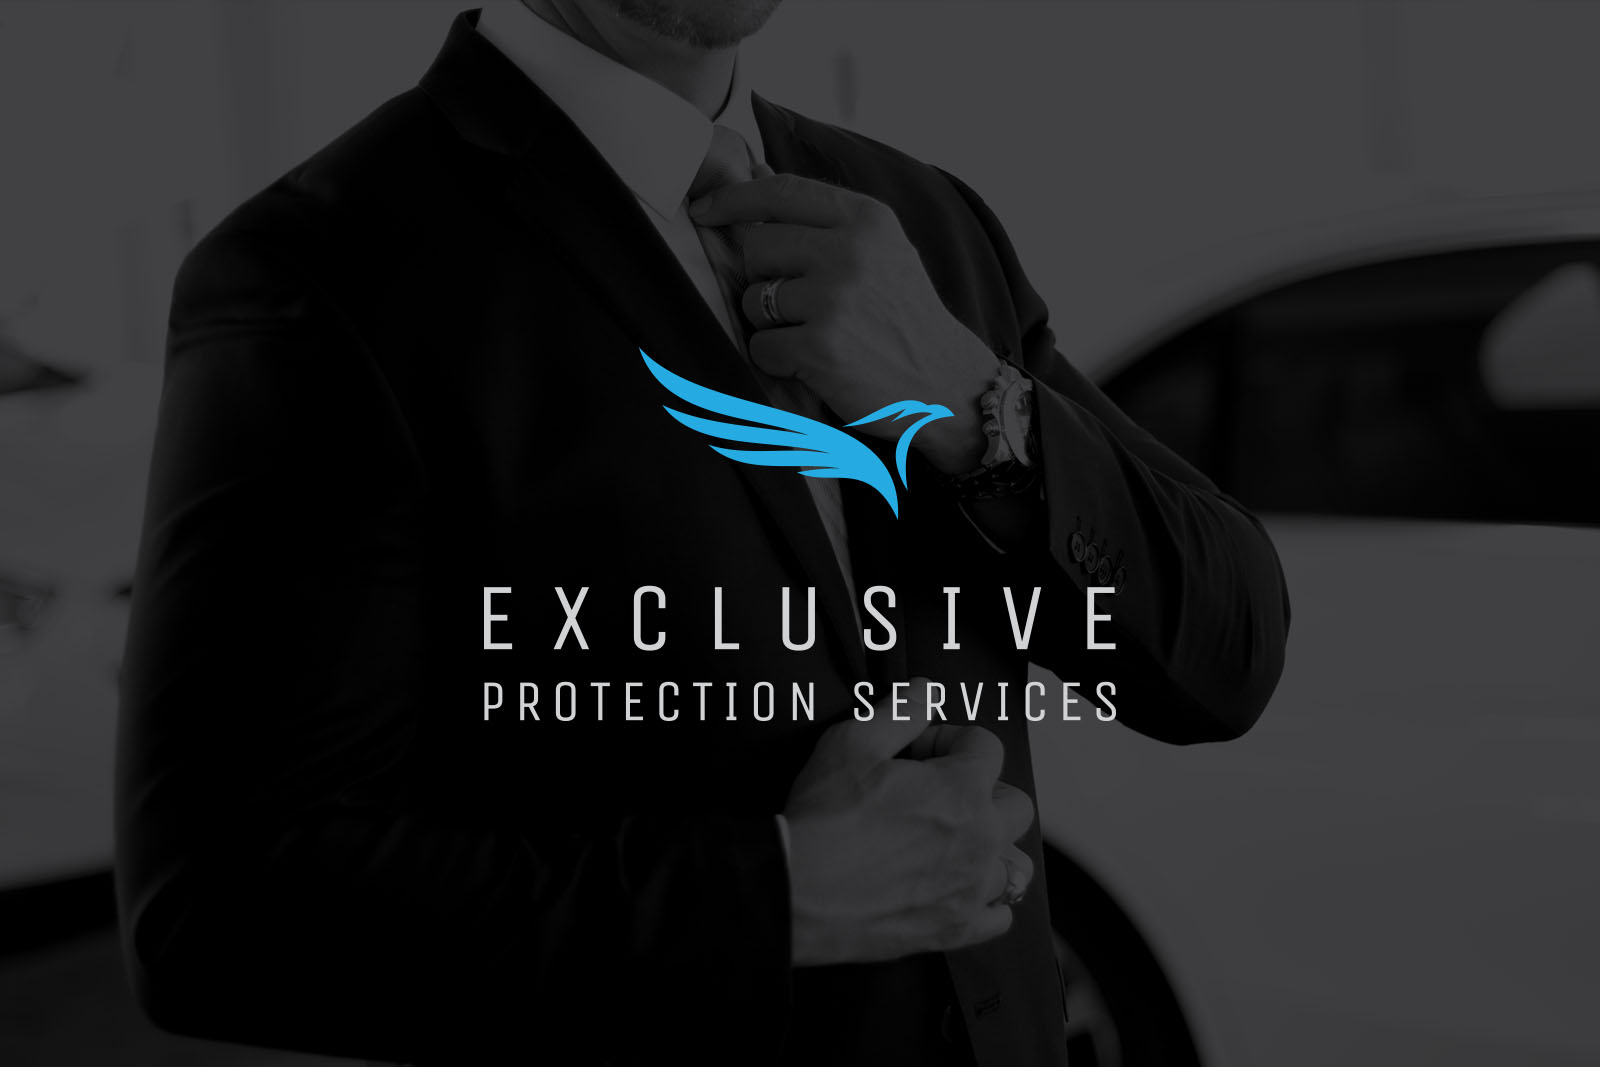 EPS Photo, EPS Logo, Exclusive Protection Services